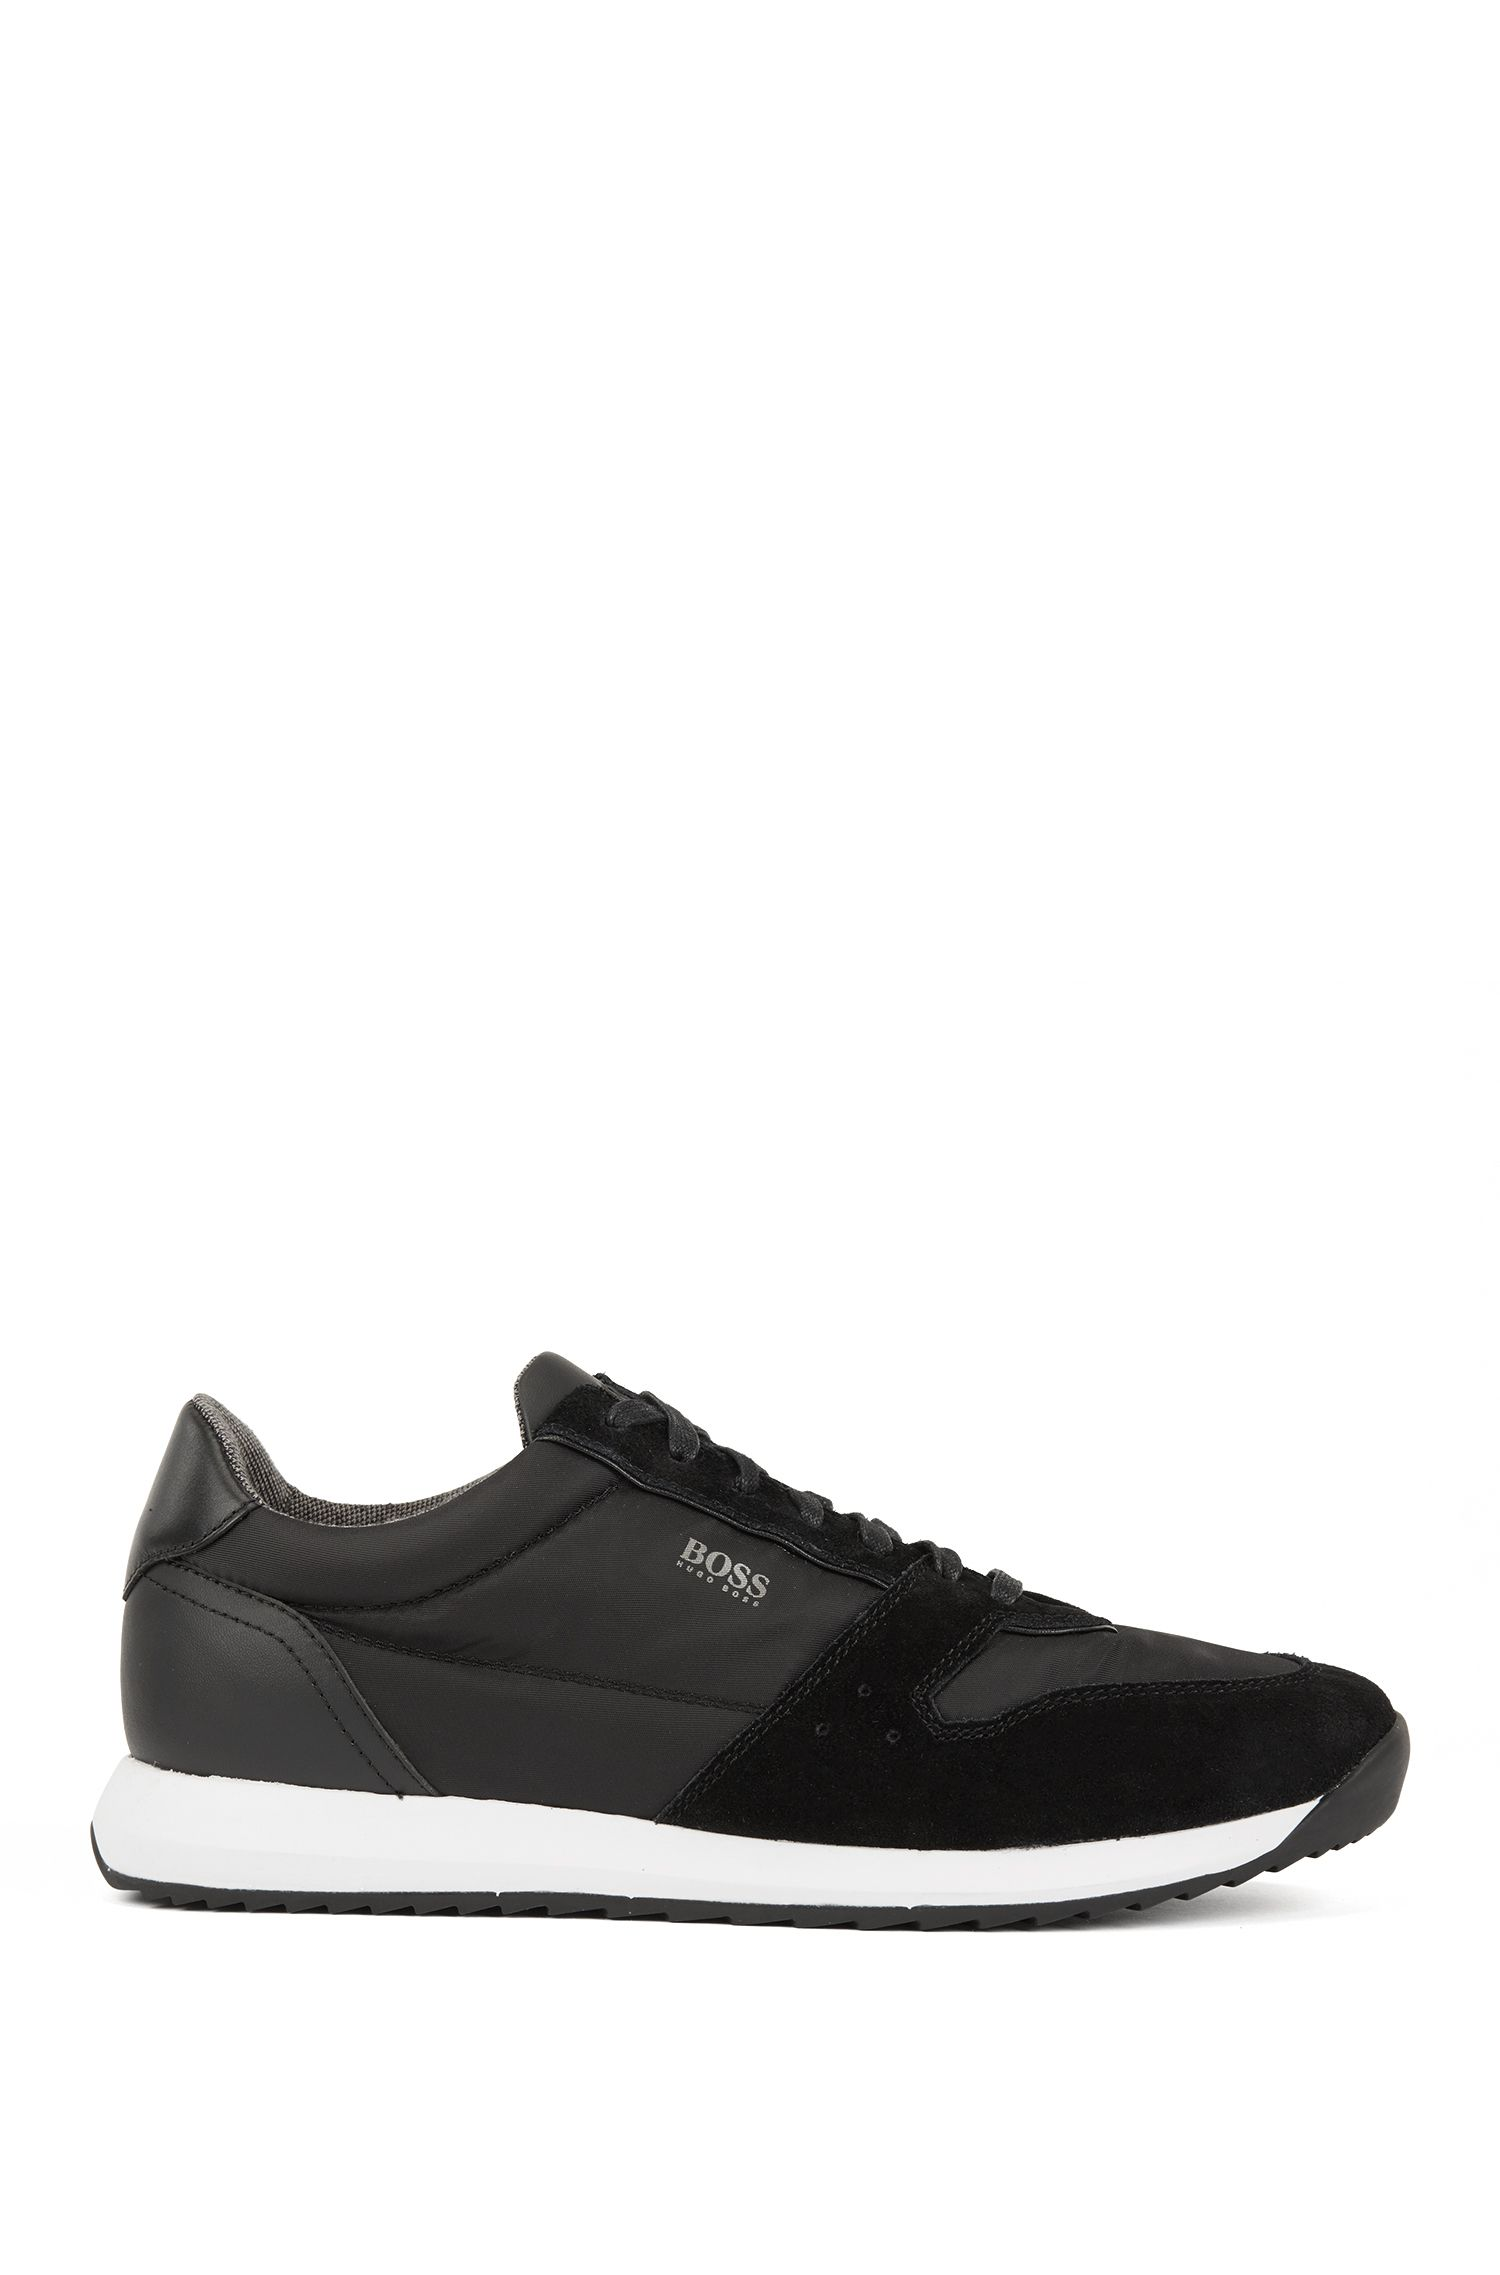 Running-inspired sneakers with technical bamboo-charcoal lining, Black